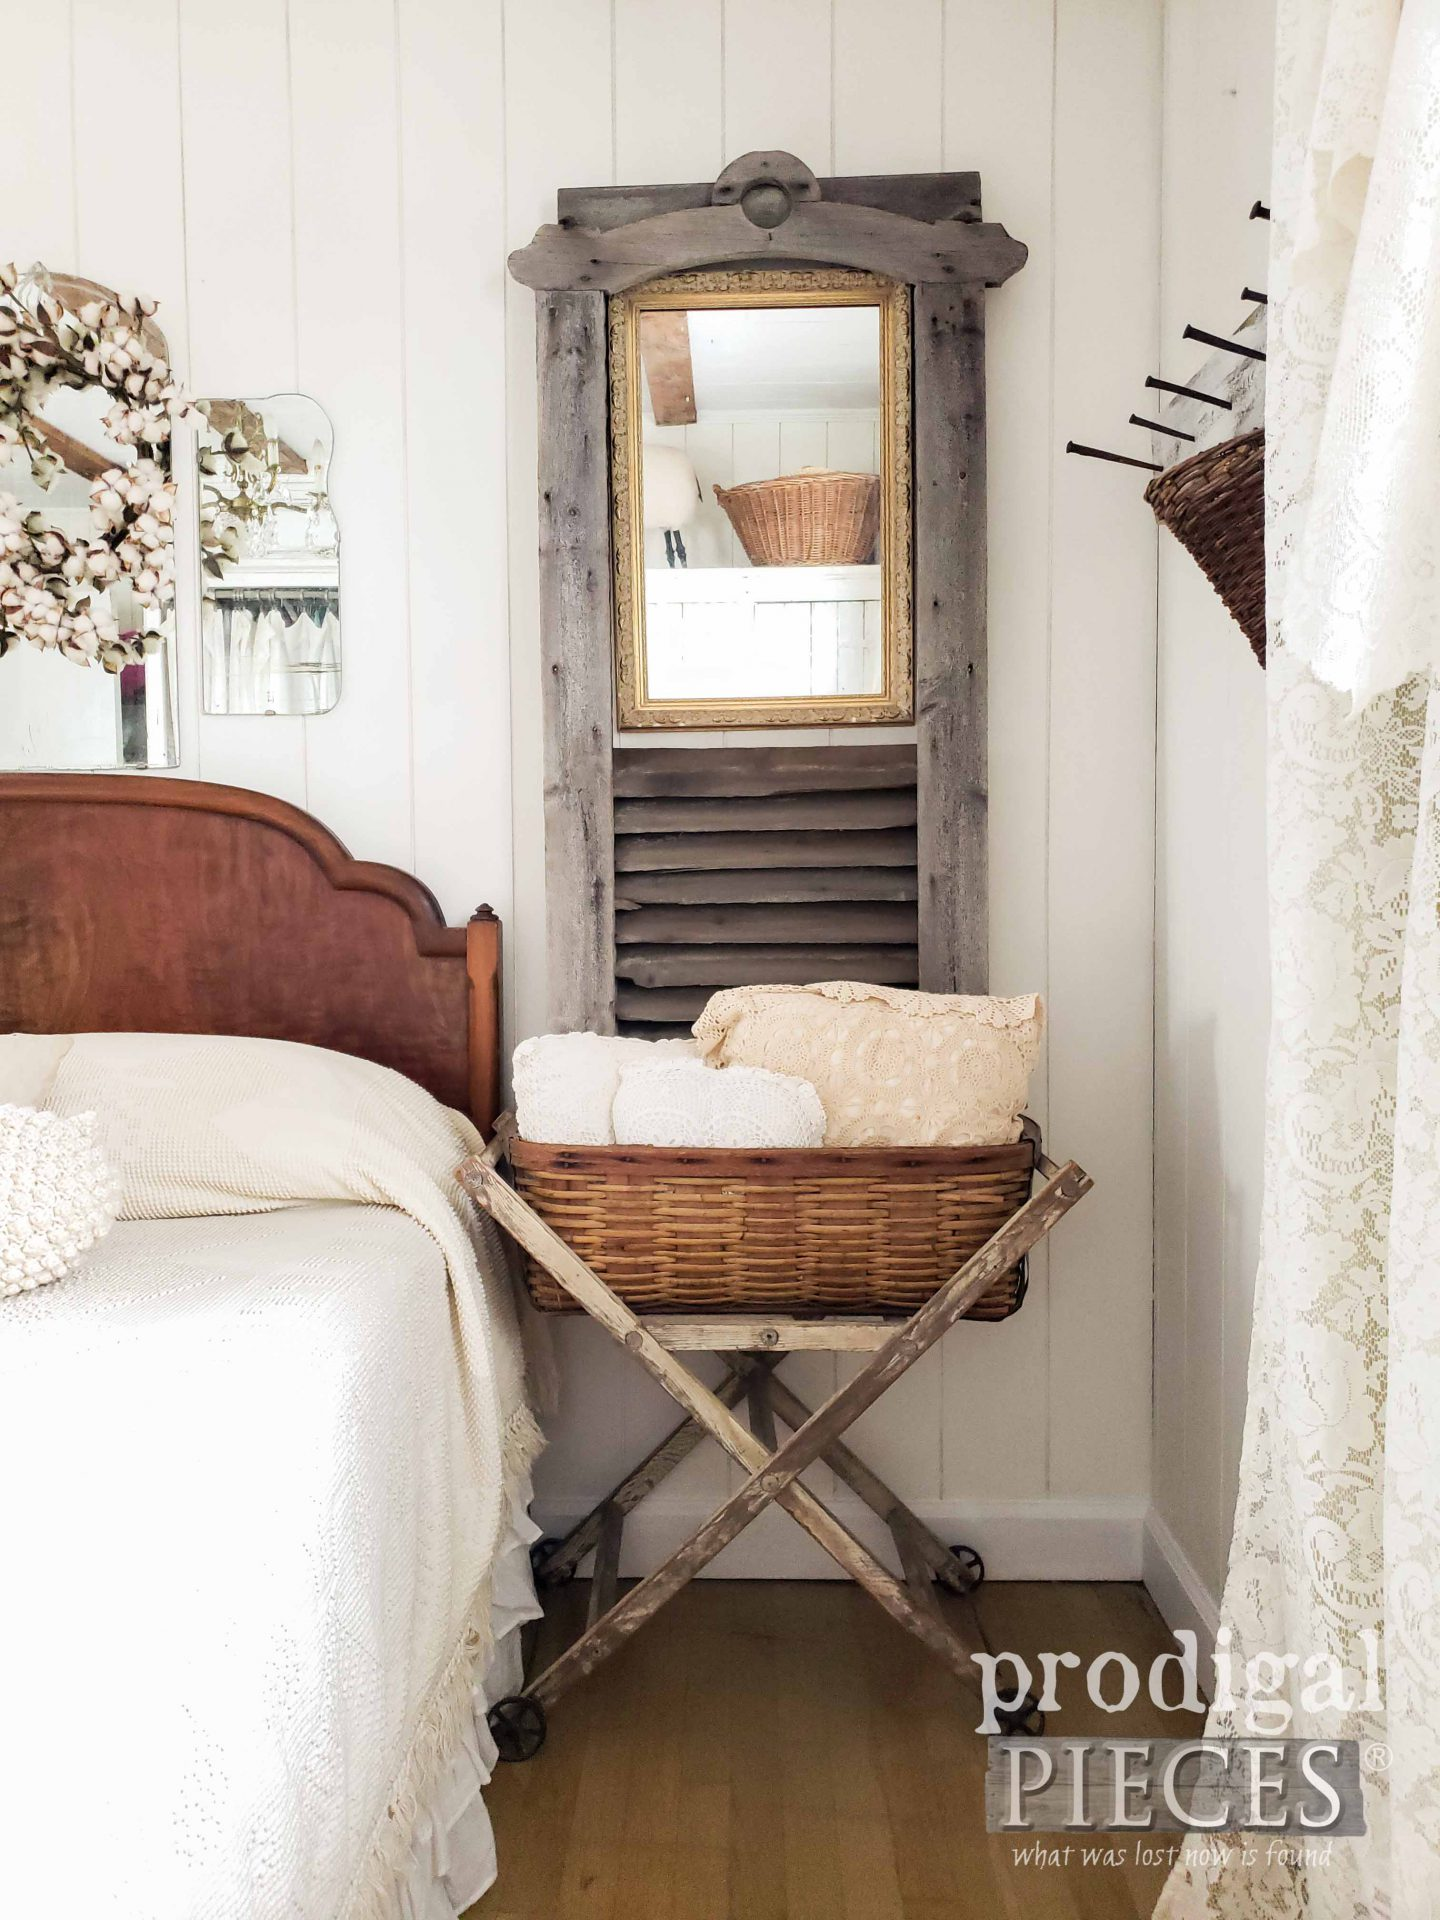 Antique Barn Vent with Mirror as Decor by Larissa of Prodigal Pieces | prodigalpieces.com #prodigalpieces #home #bedroom #farmhouse #homedecor